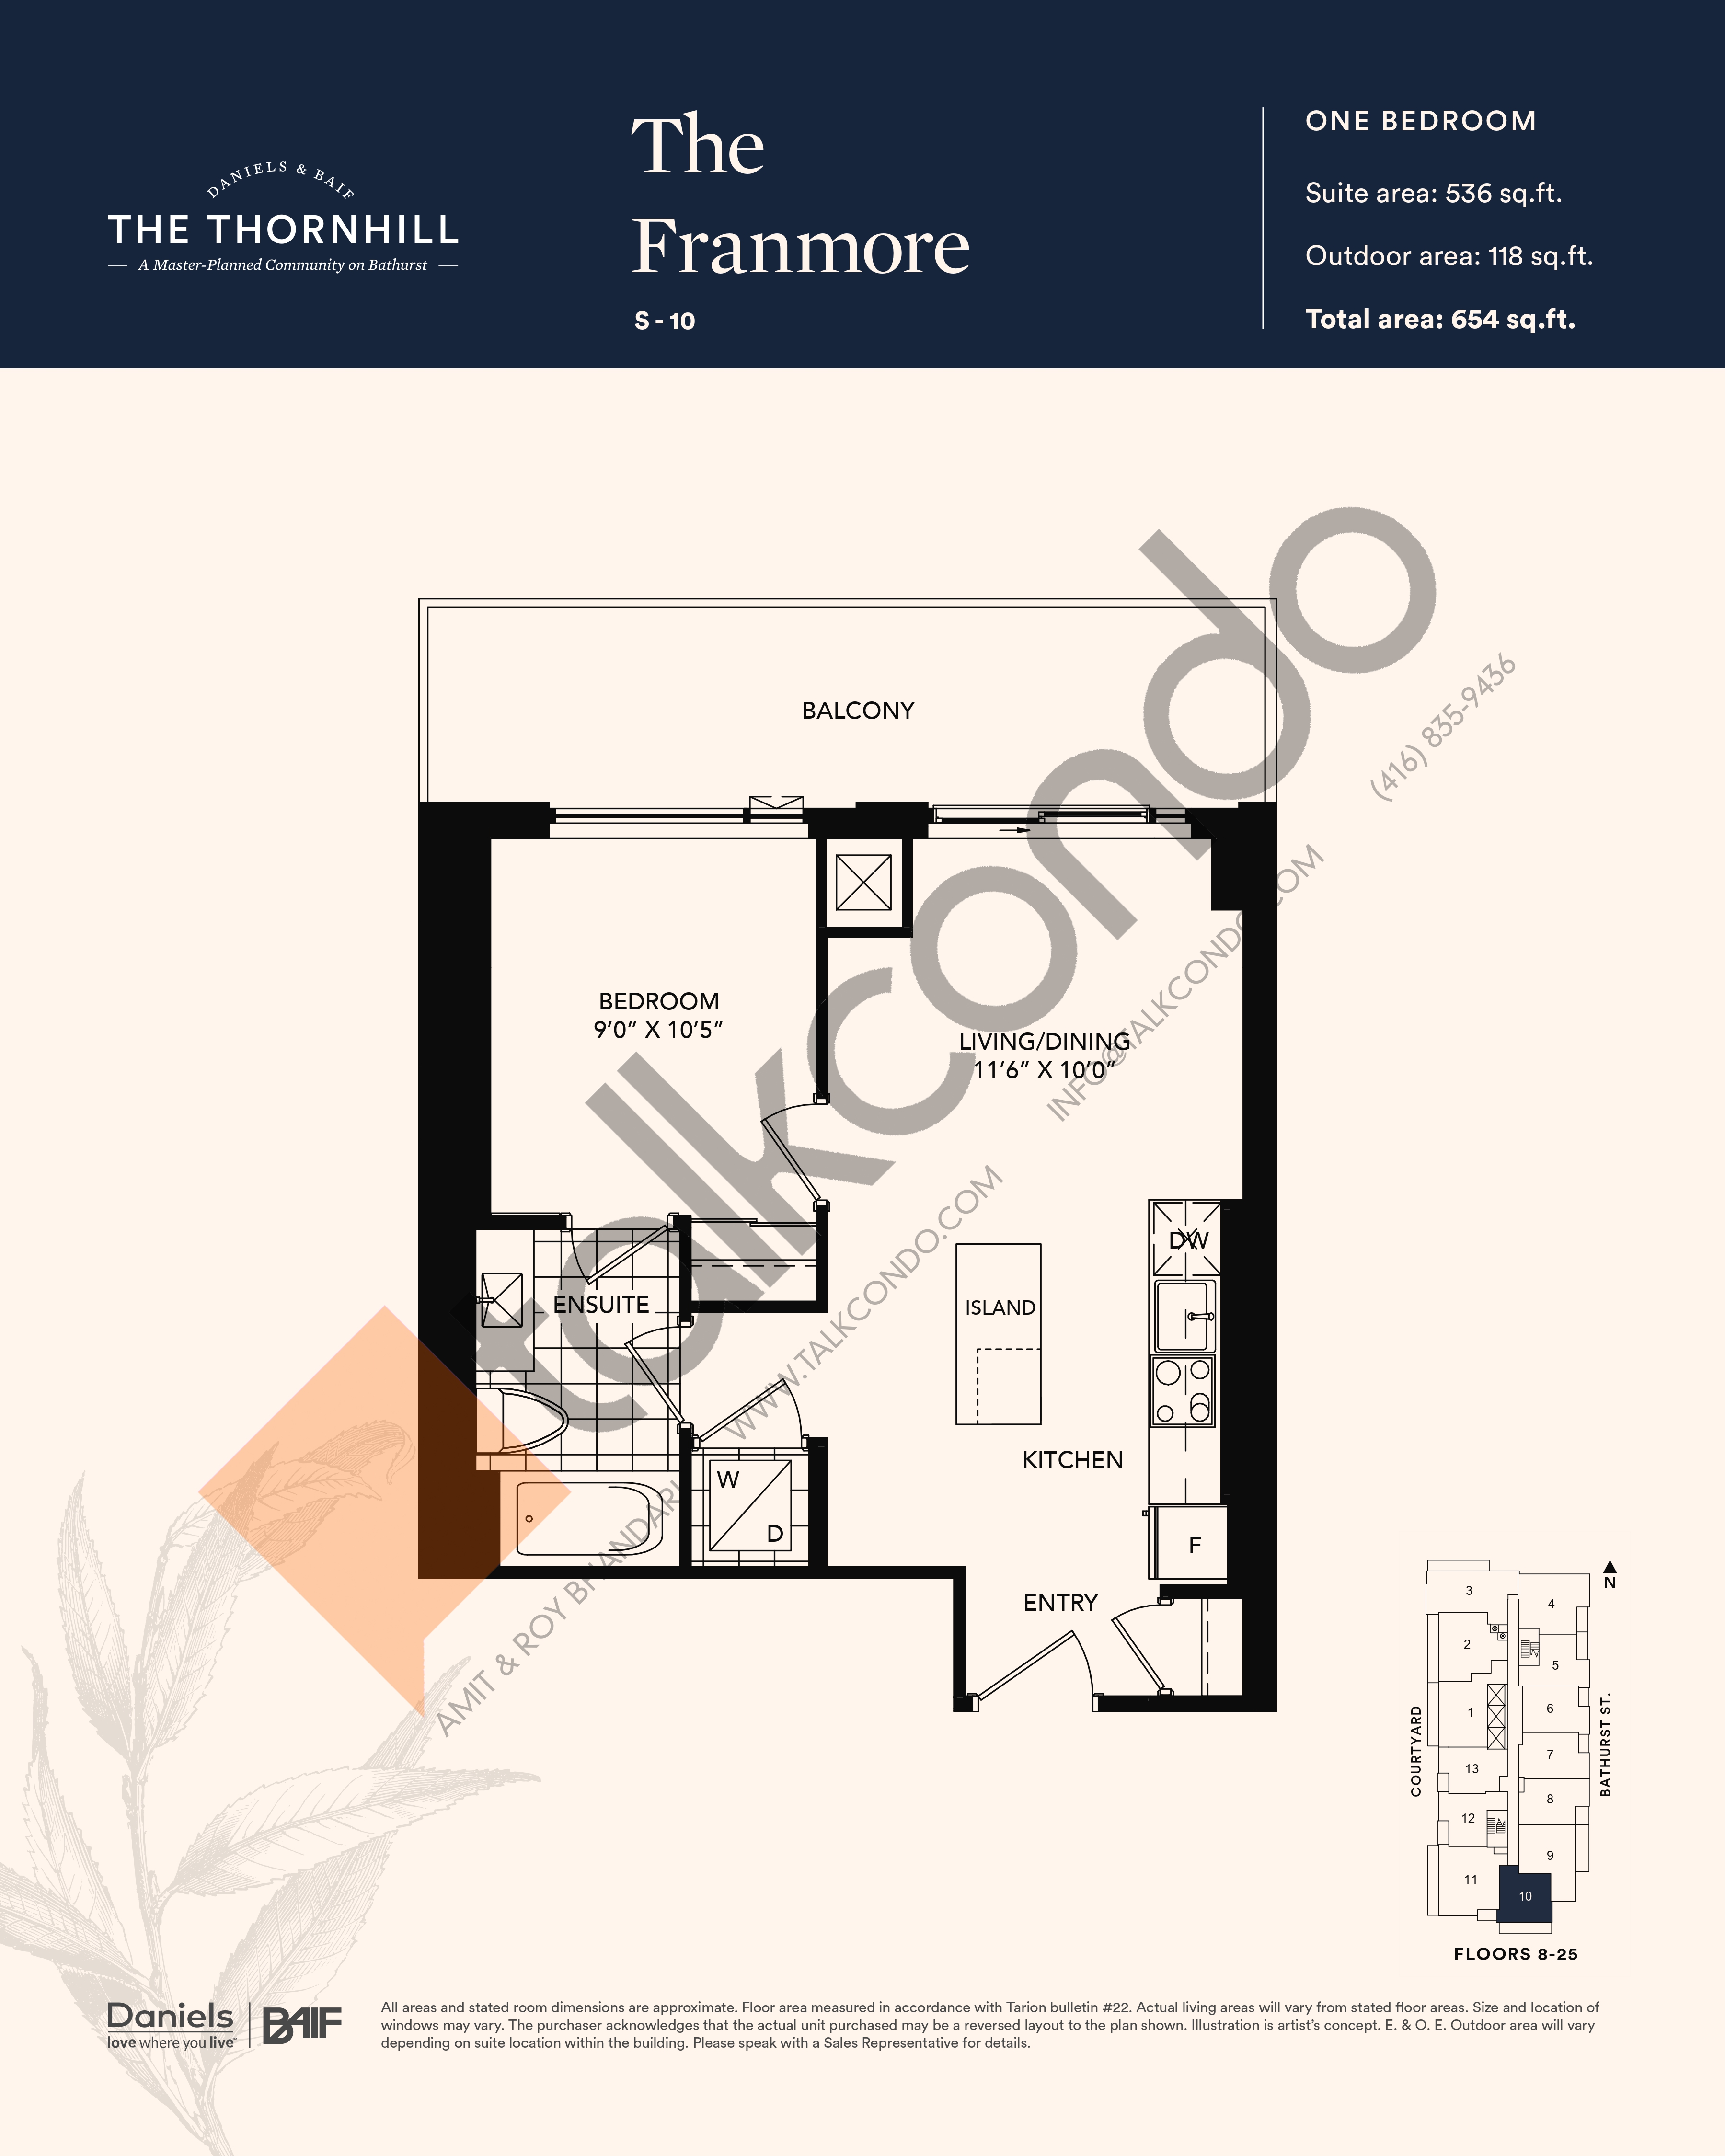 The Franmore Floor Plan at The Thornhill Condos - 536 sq.ft